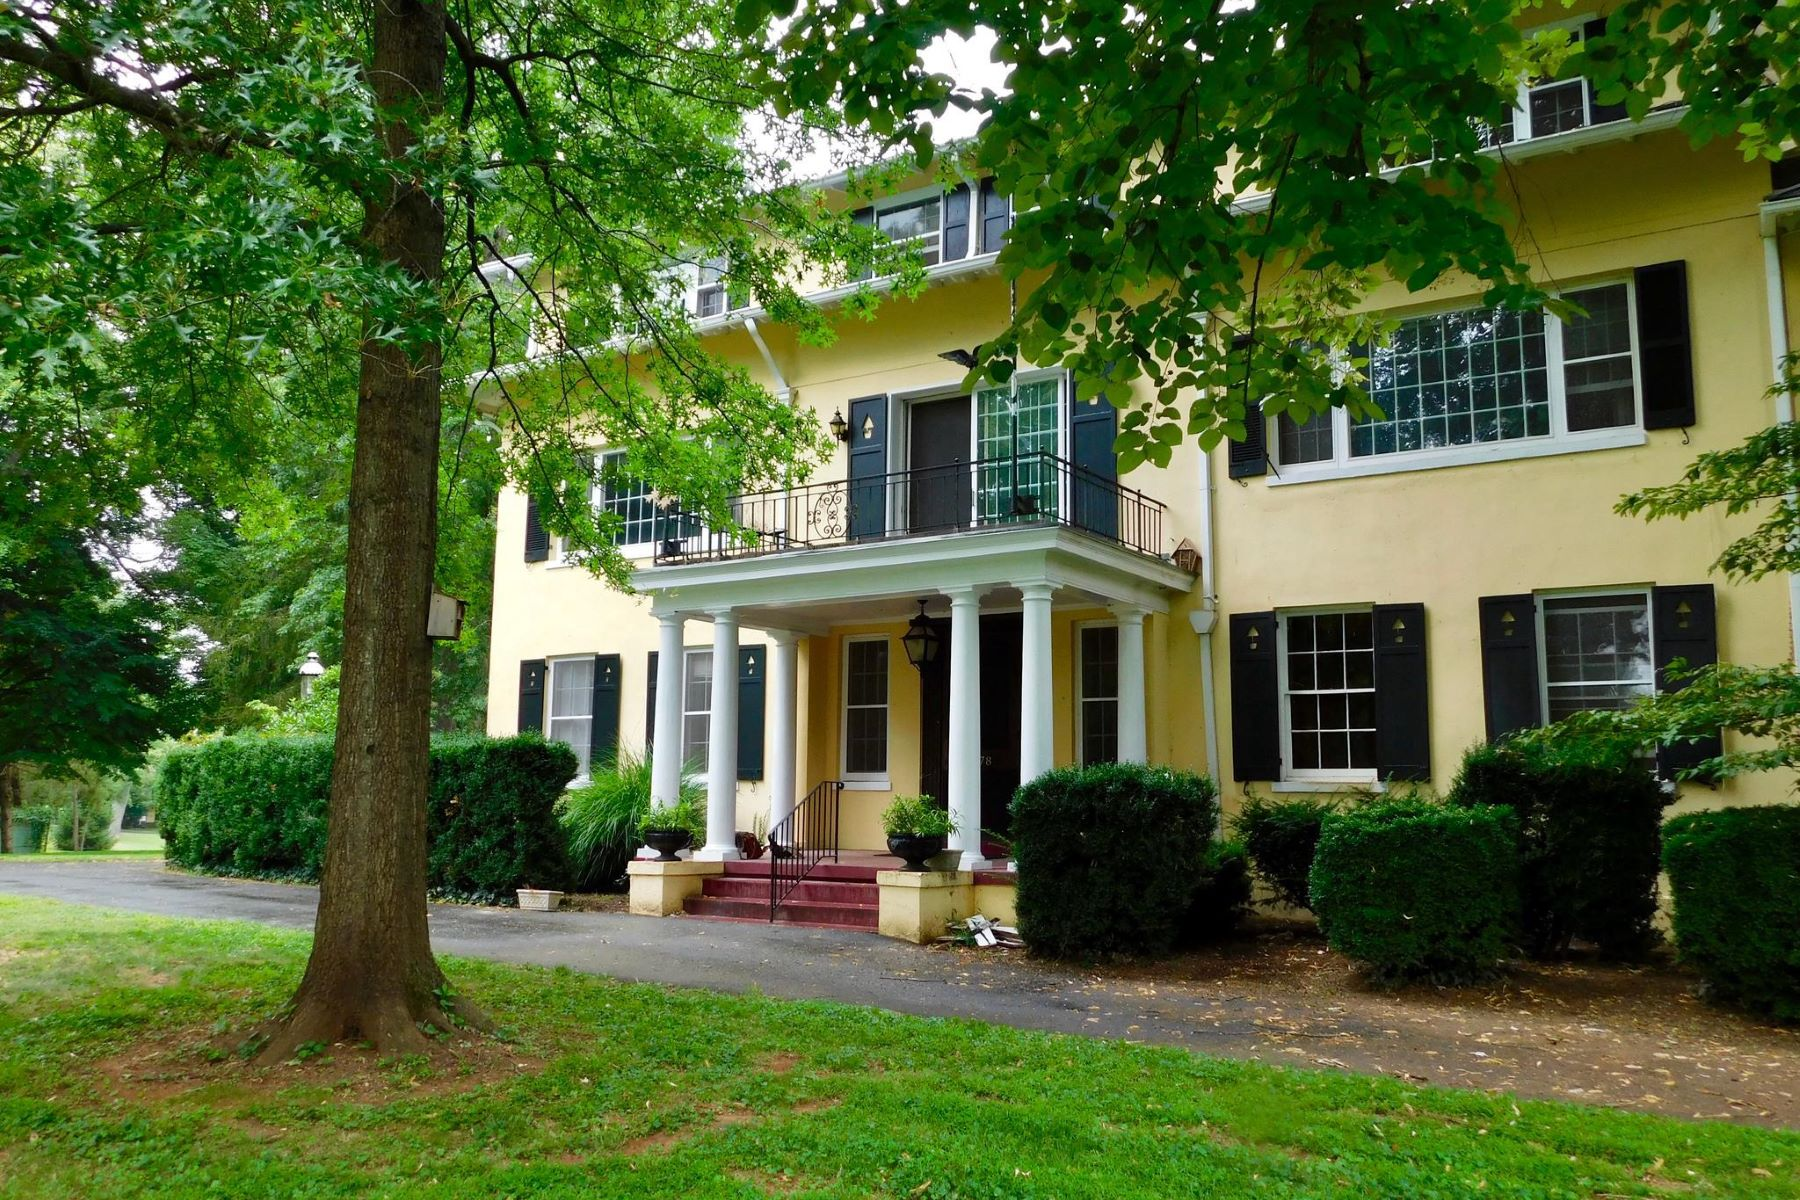 Single Family Homes for Sale at 7078 Airlie Rd Airlie Farm Airlie Road, Warrenton, Virginia 20187 United States